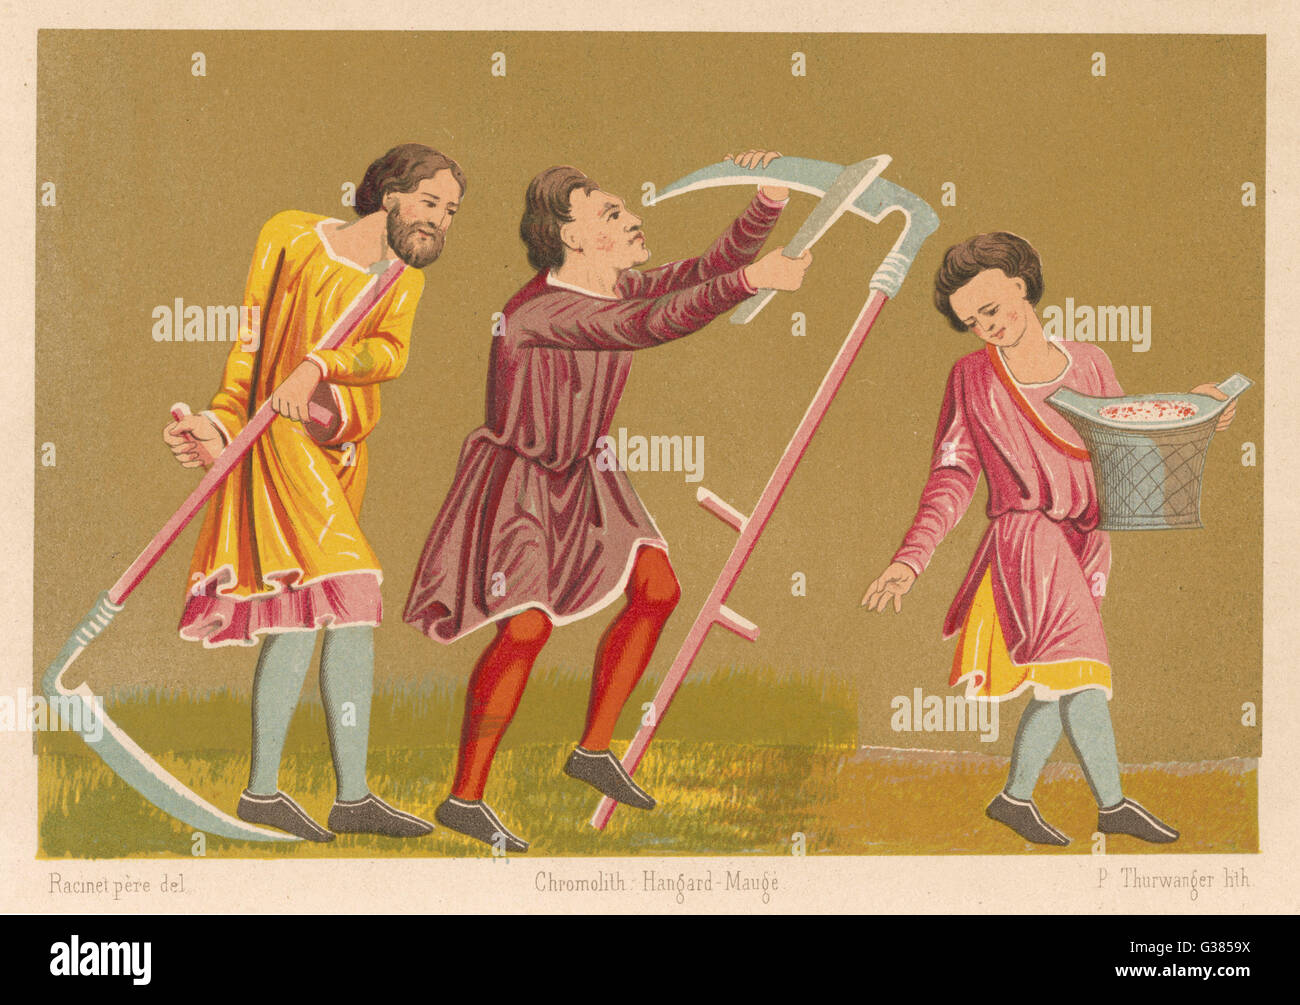 Scything and sowing          Date: 13th century - Stock Image